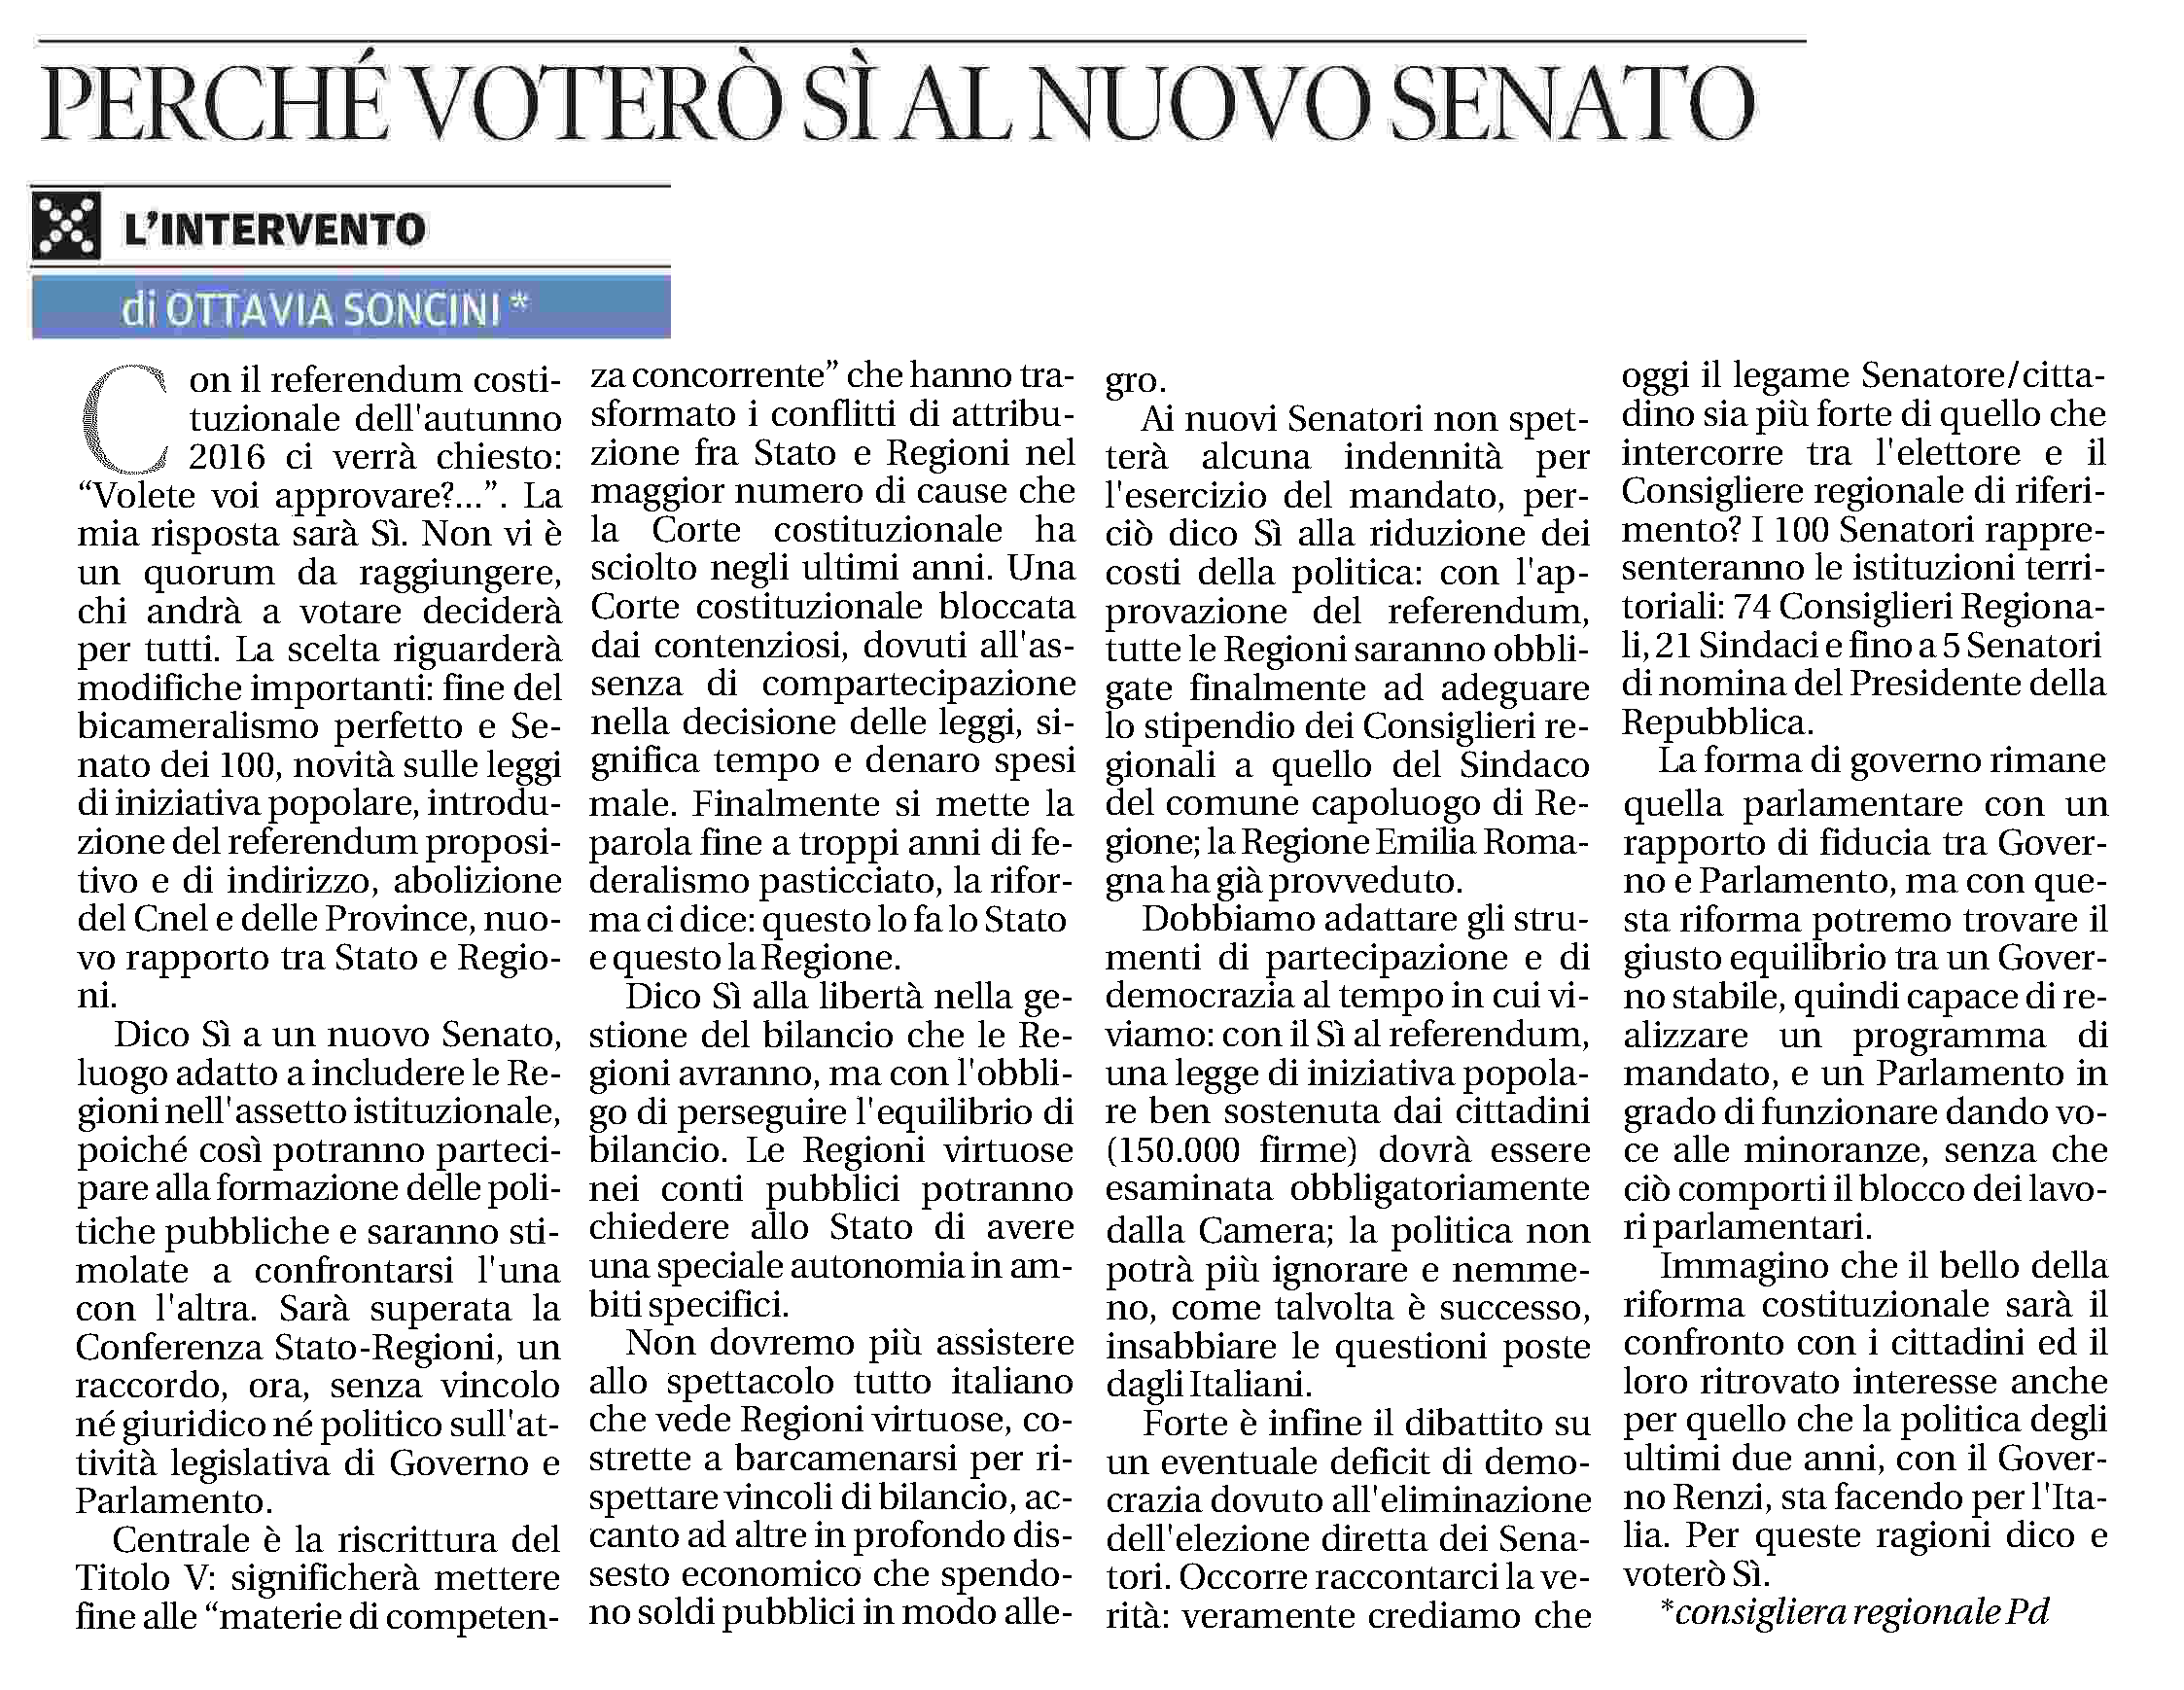 editoriale referendum cost